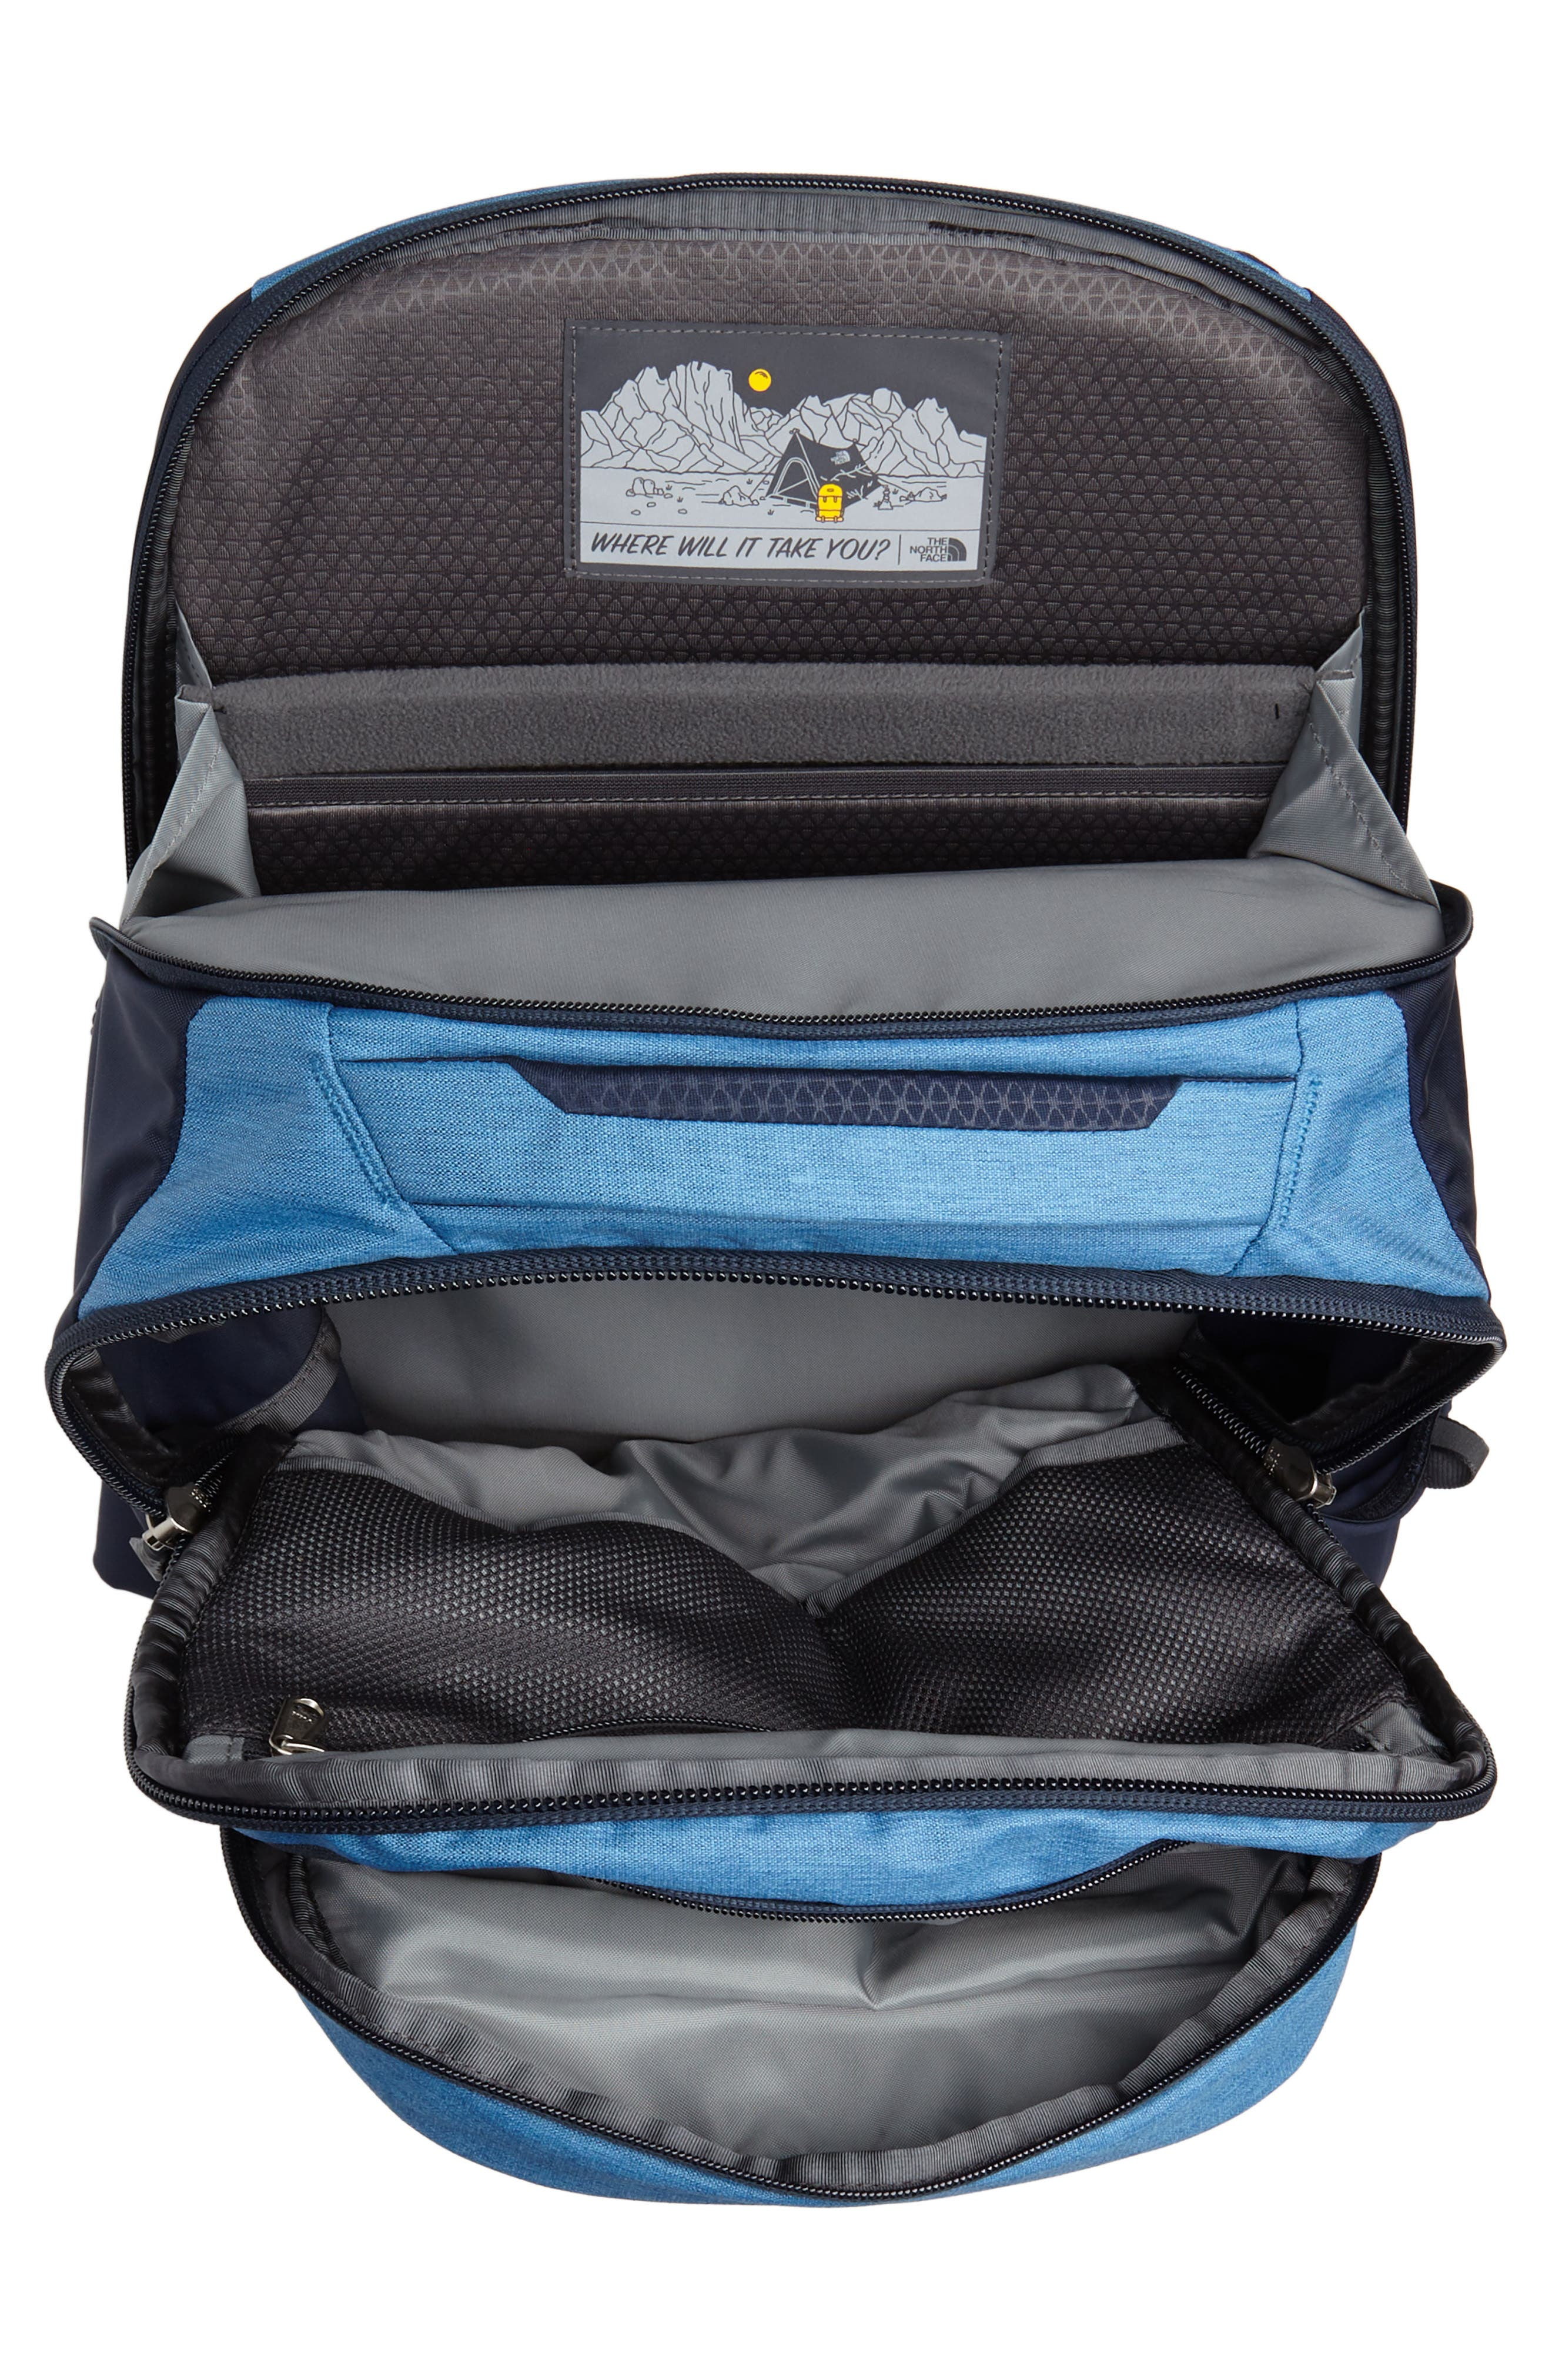 THE NORTH FACE,                             Router Backpack,                             Alternate thumbnail 4, color,                             DISH BLUE HEATHER/ URBAN NAVY